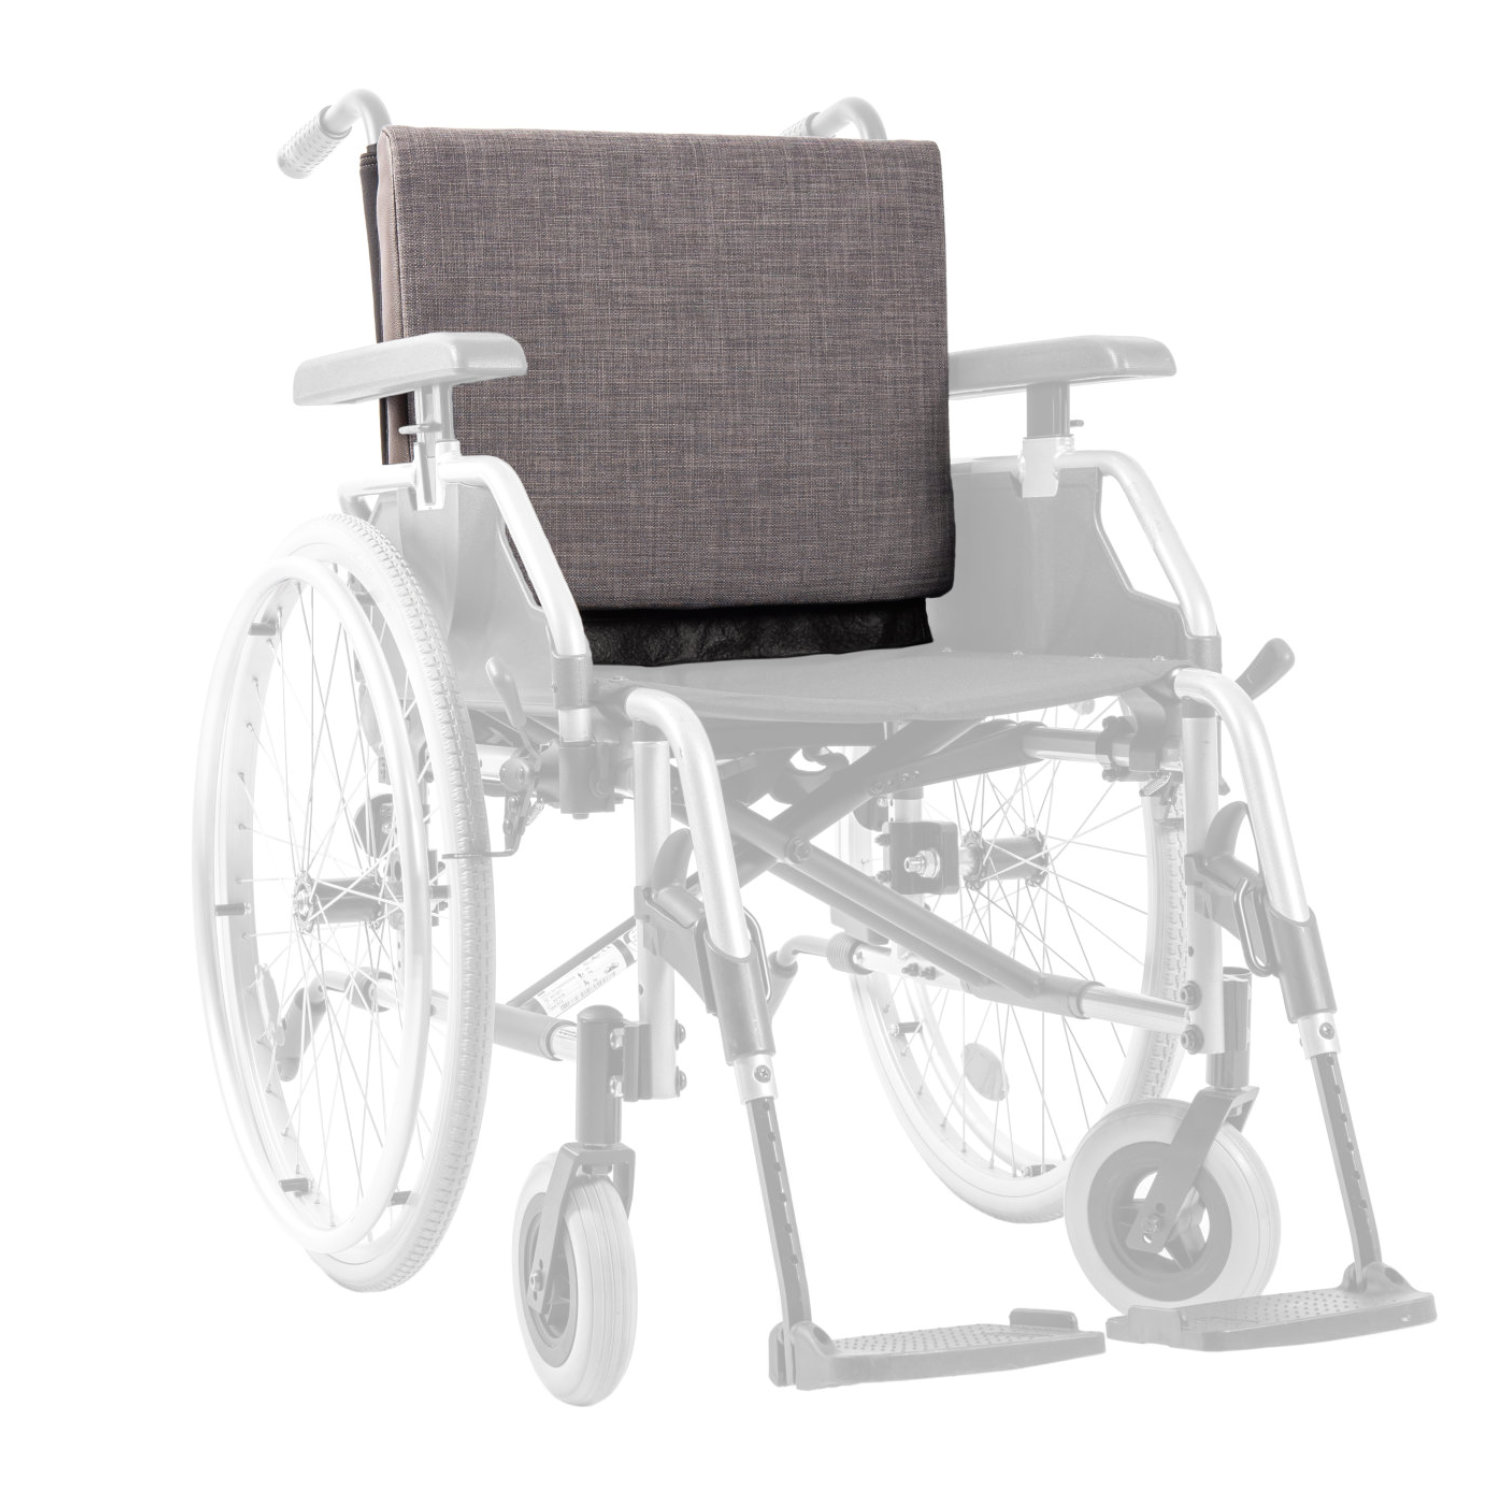 Extra wheelchair cushion gray - wheelchair back cushion